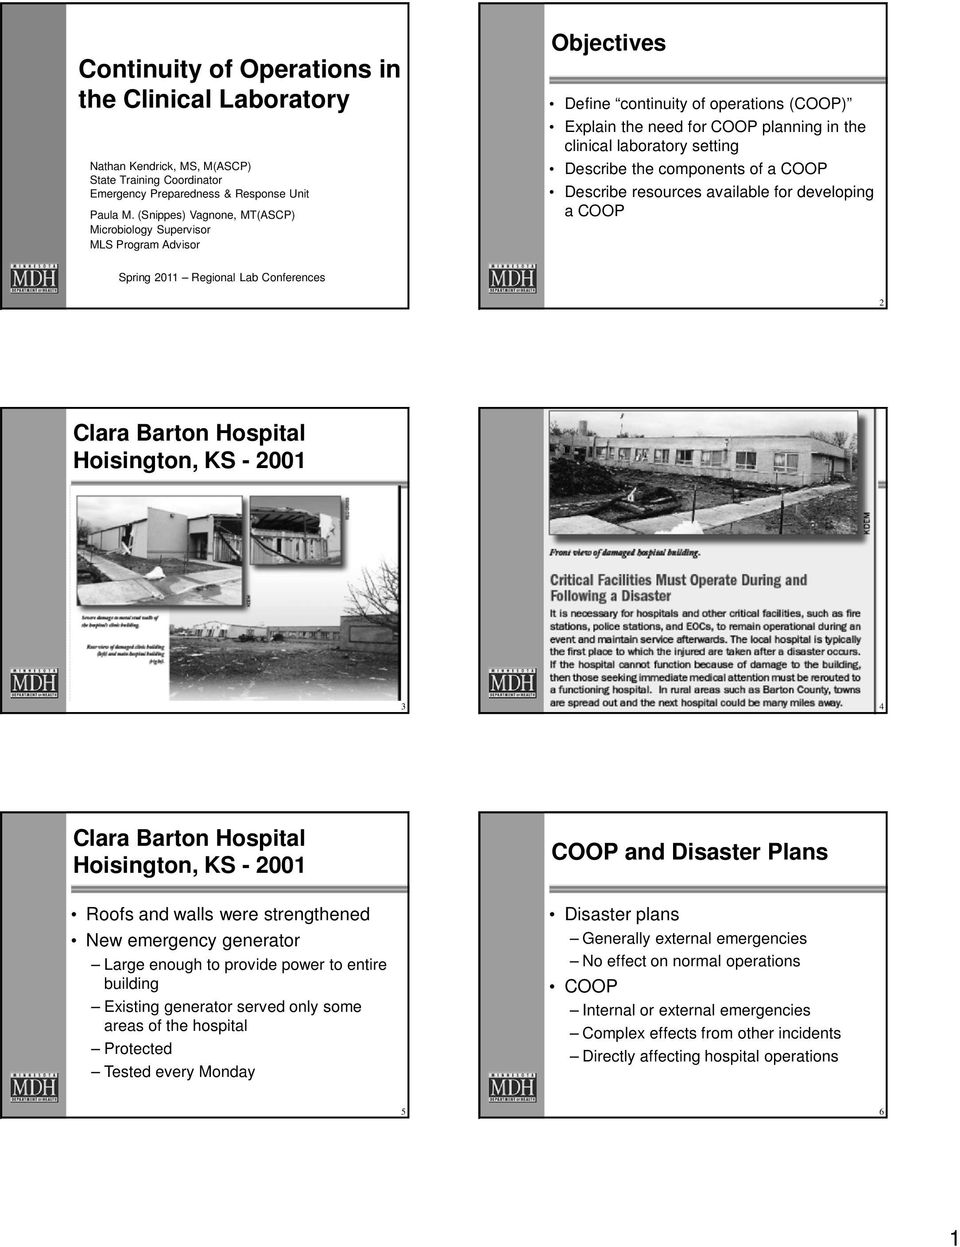 Describe the components of a COOP Describe resources available for developing a COOP Spring 2011 Regional Lab Conferences 2 Clara Barton Hospital Hoisington, KS - 2001 3 4 Clara Barton Hospital